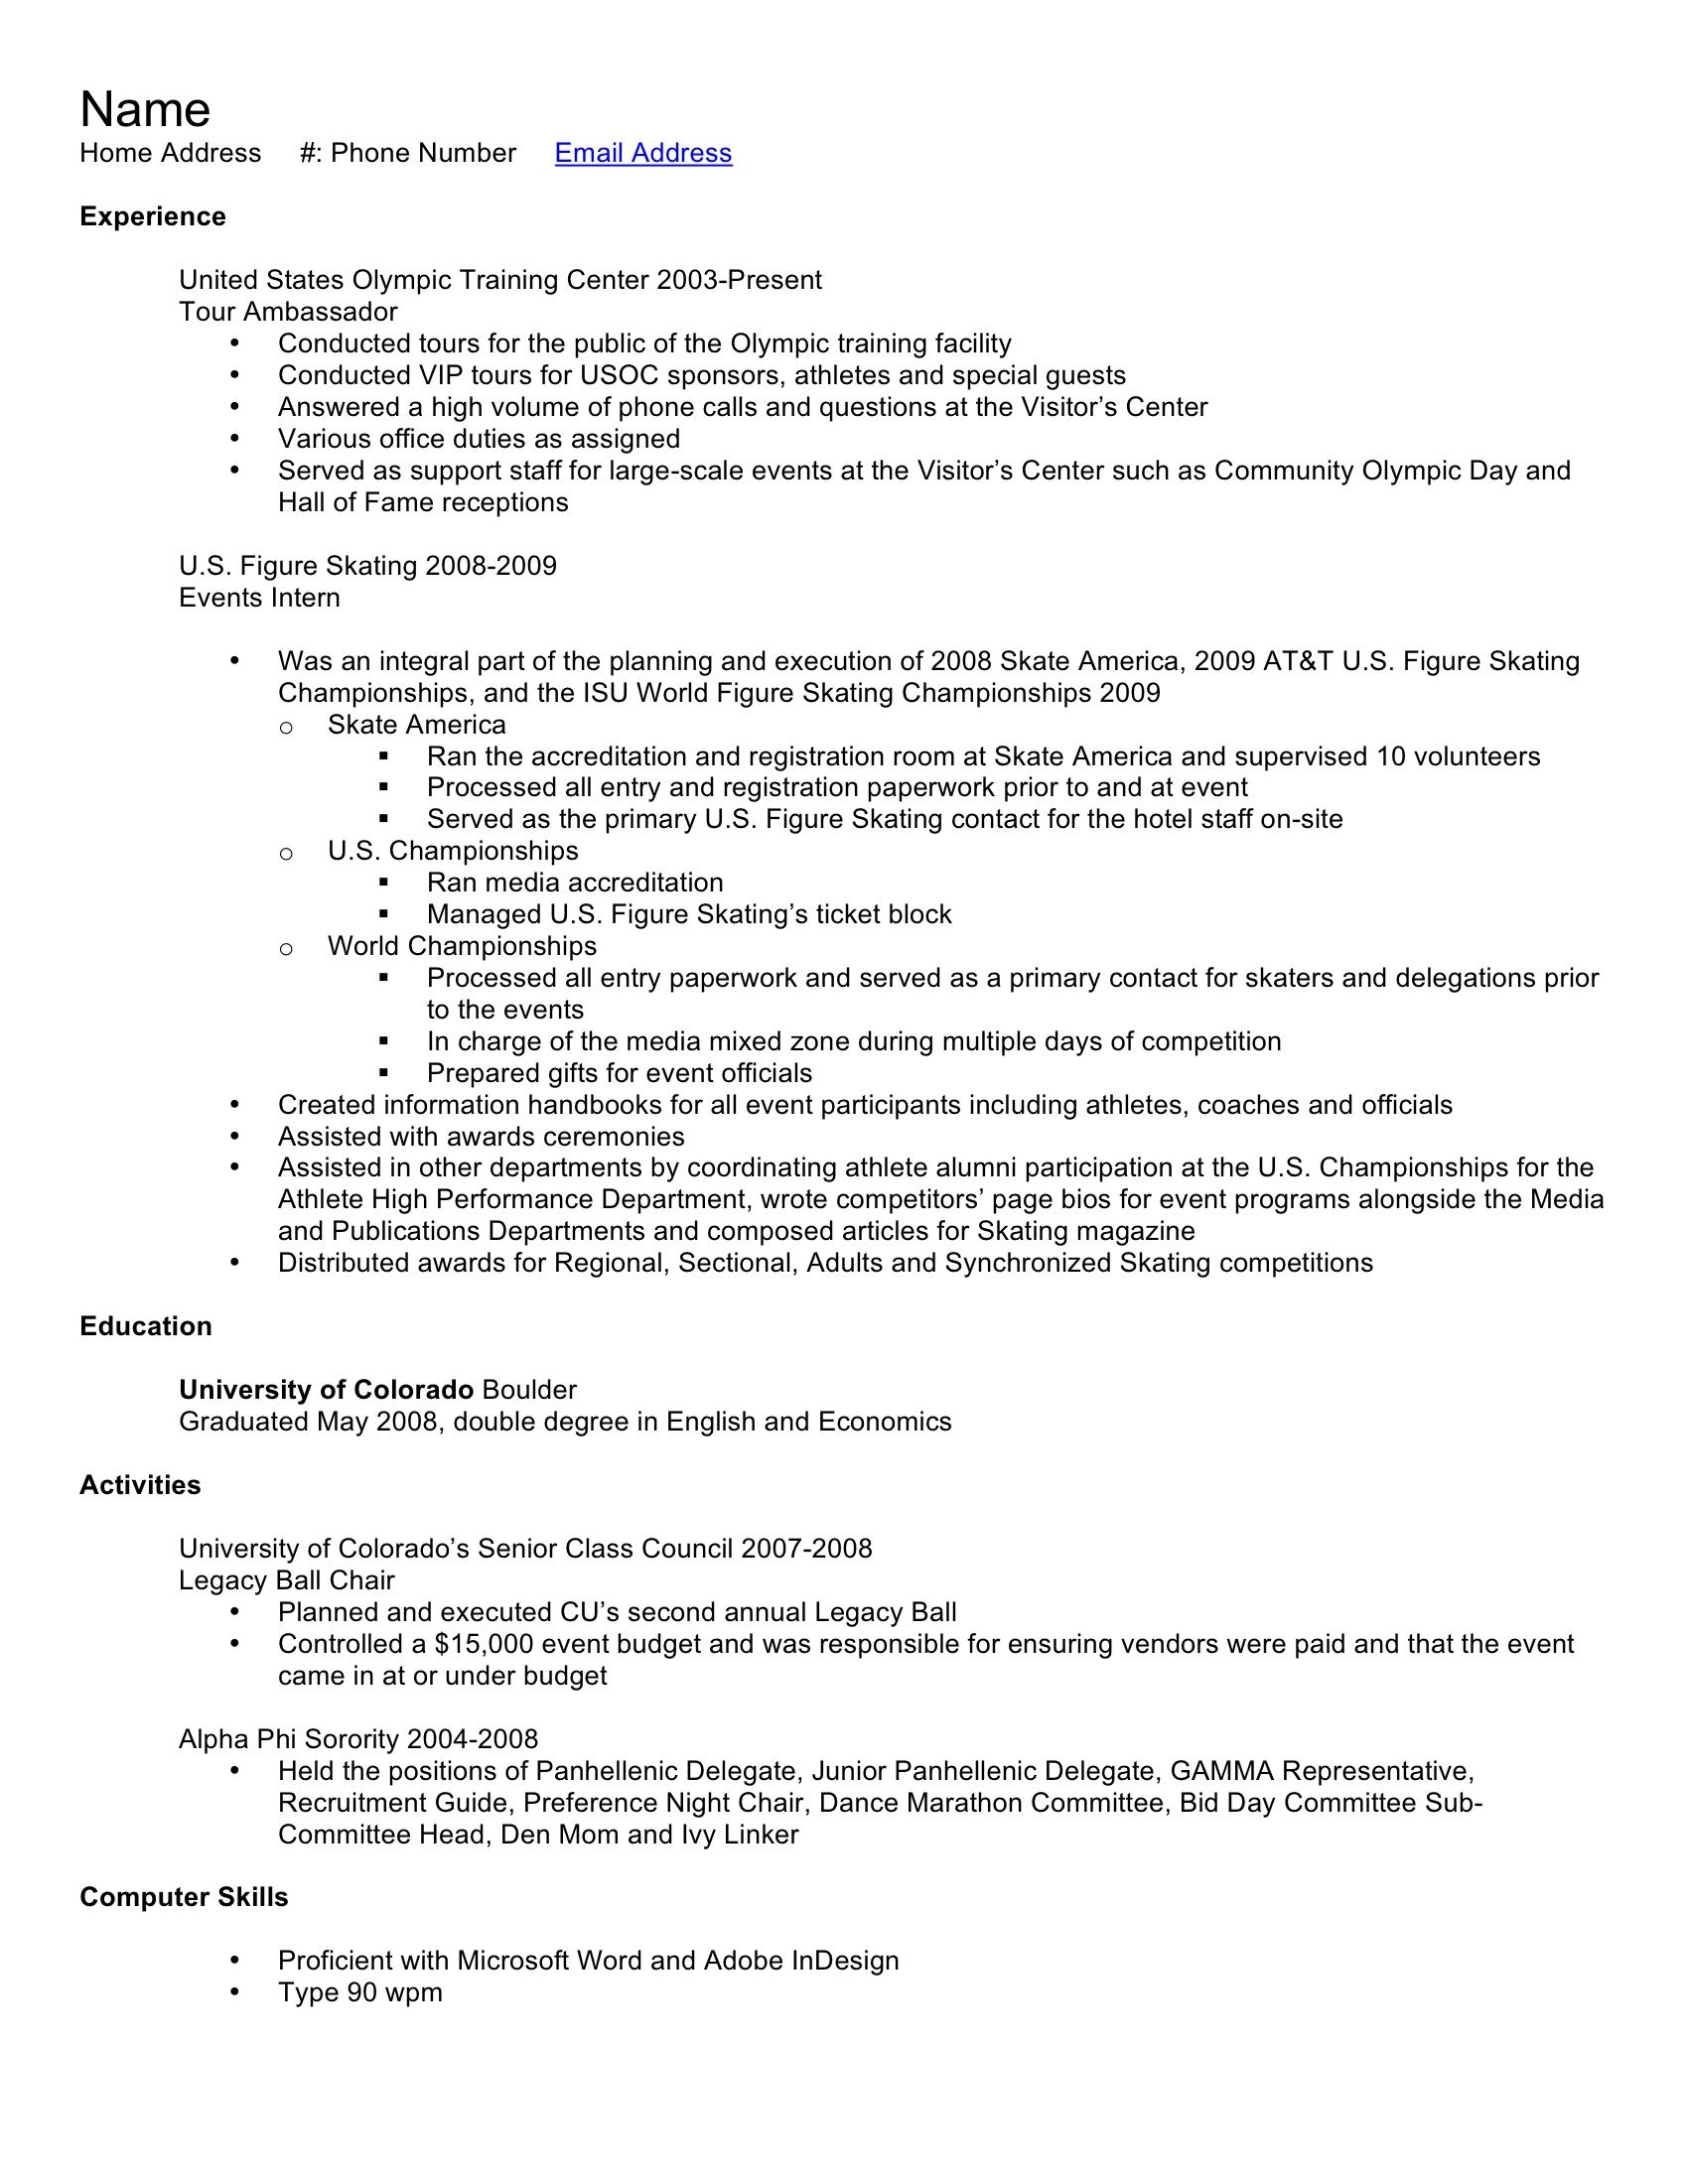 resume for entry level job - Entry Level Job Resume Examples